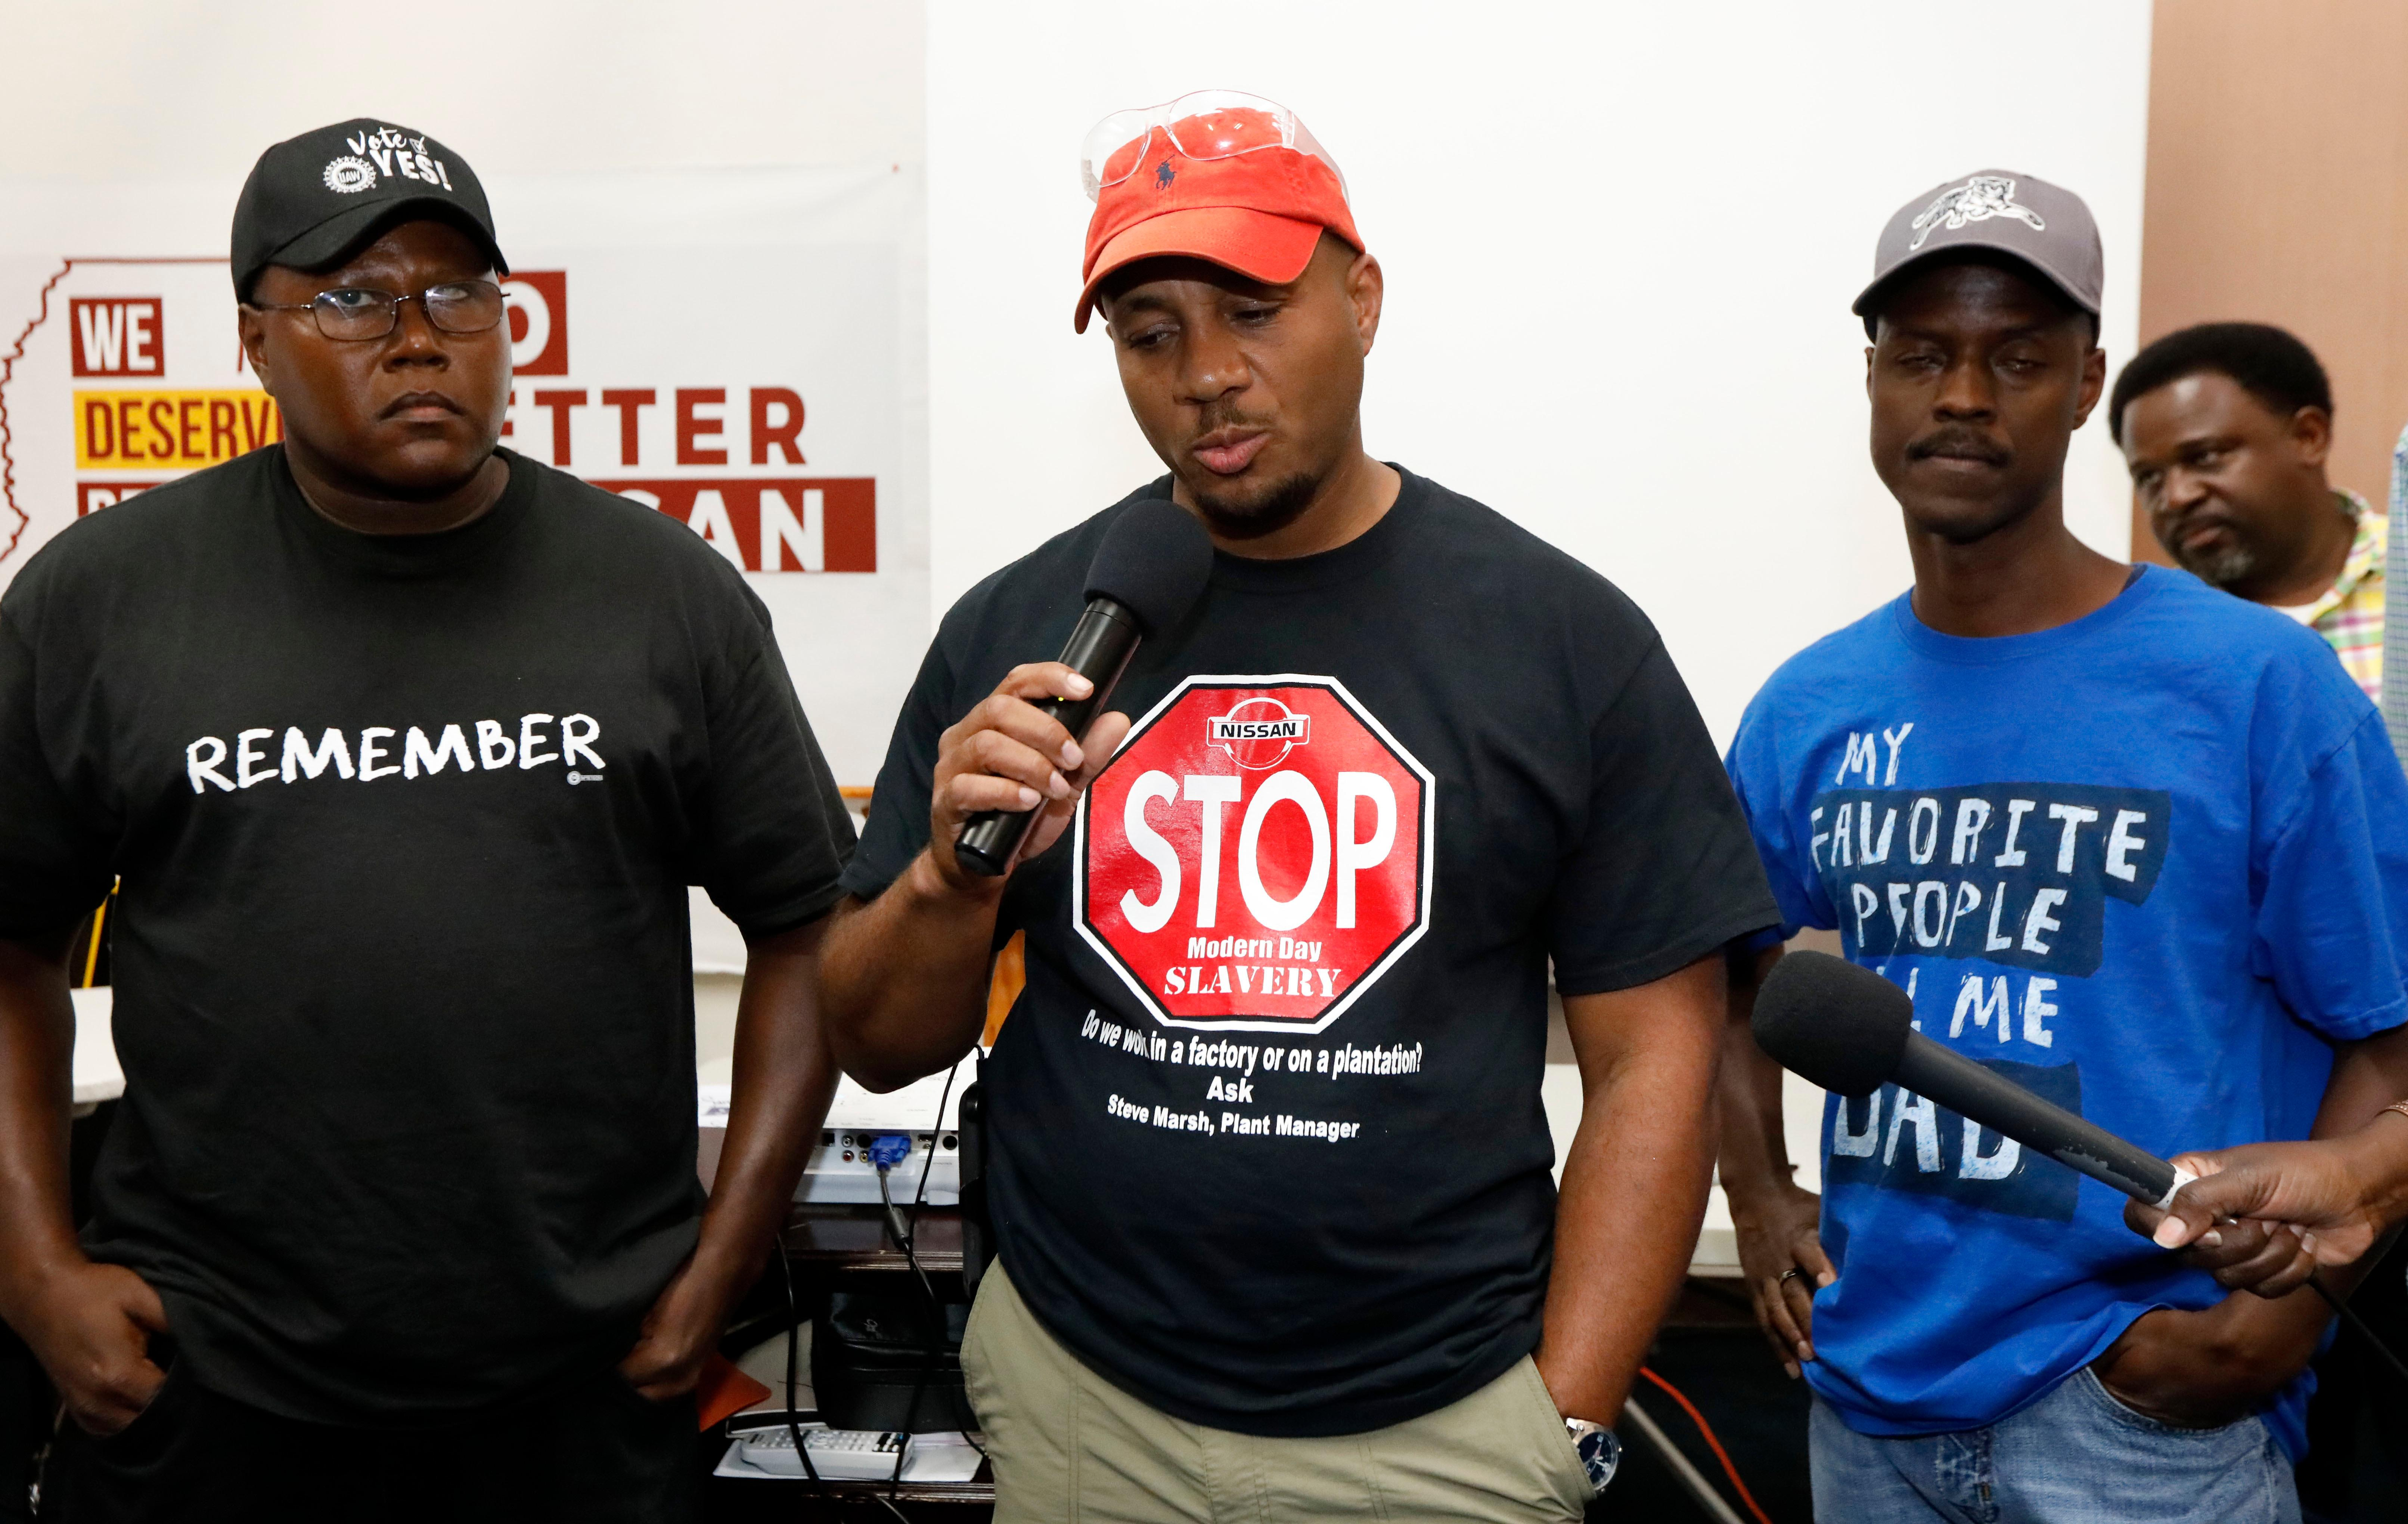 Nissan employee Morris Mock, center, flanked by other Nissan employees expresses his disappointment at losing their bid to have union representation at the Nissan vehicle assembly plant in Canton, Miss., Friday, Aug. 4, 2017. (AP Photo/Rogelio V. Solis)